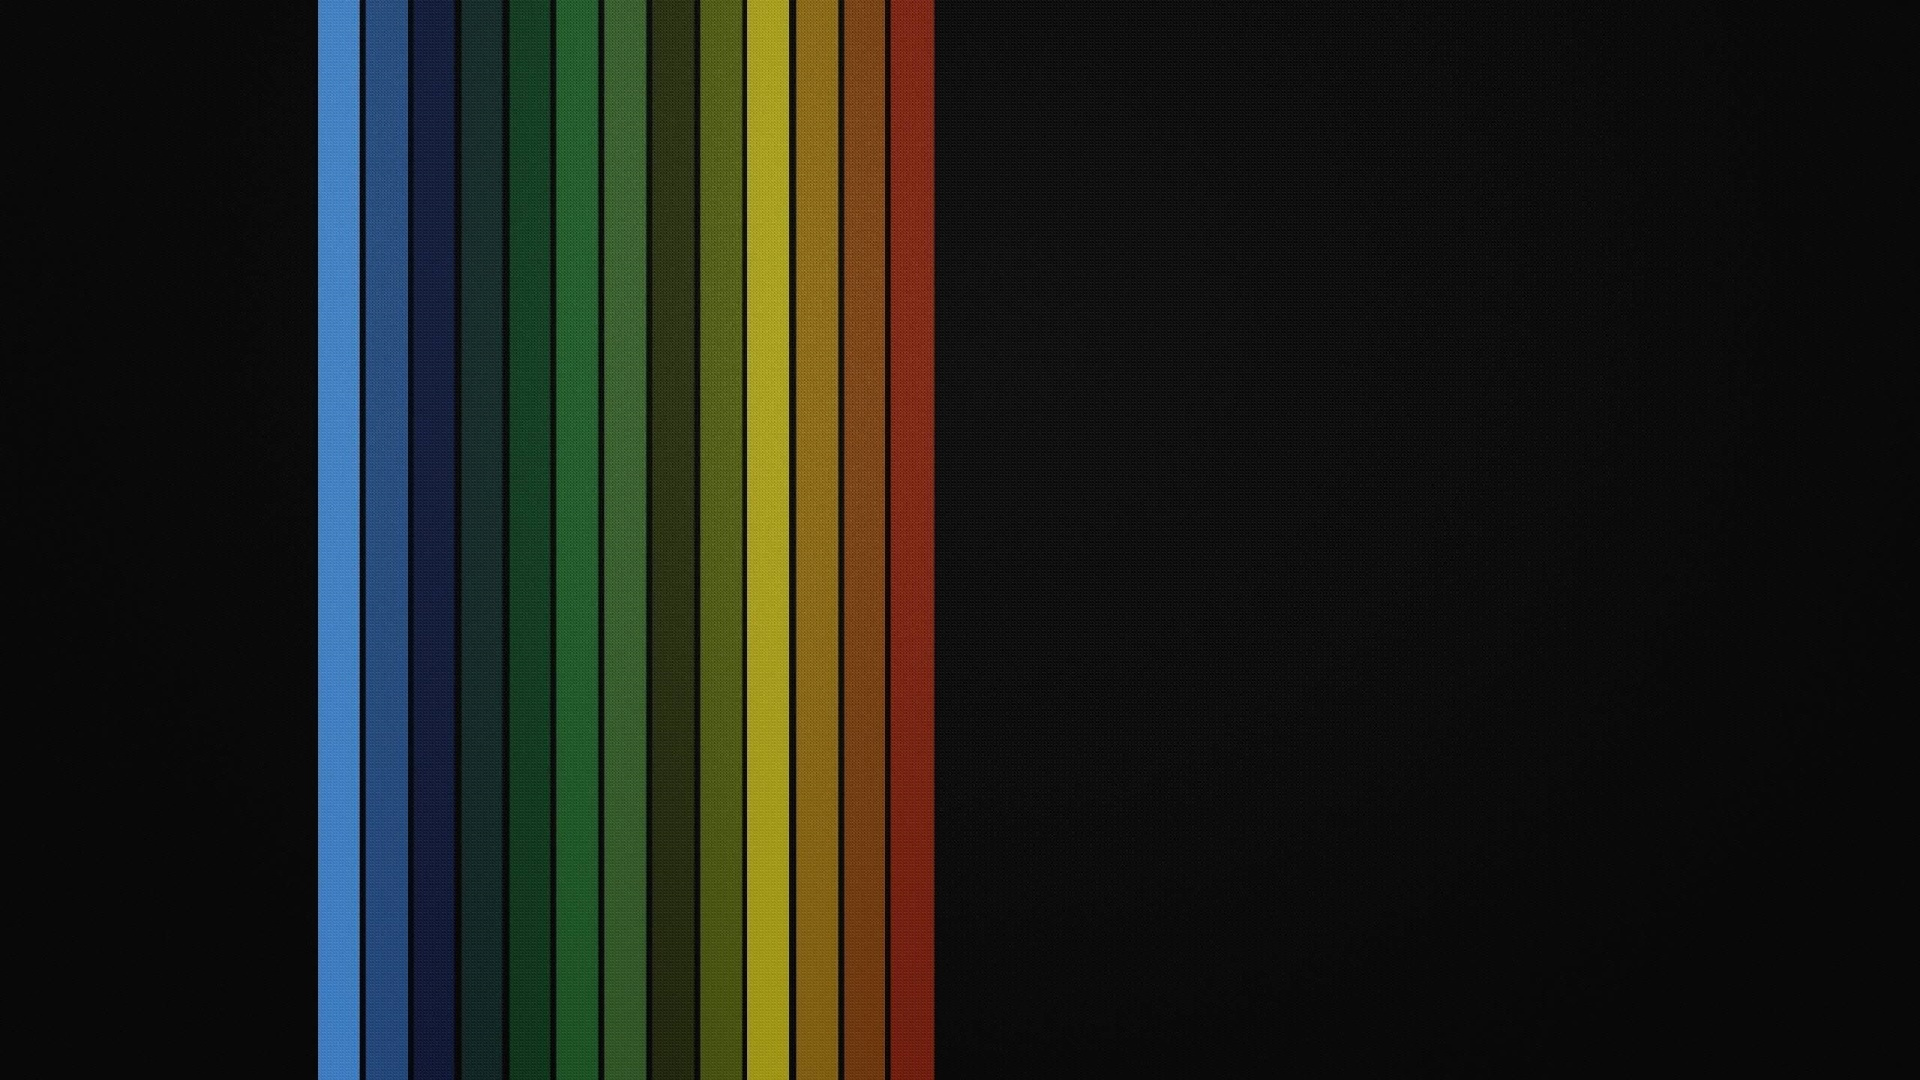 Rainbow lines wallpaper